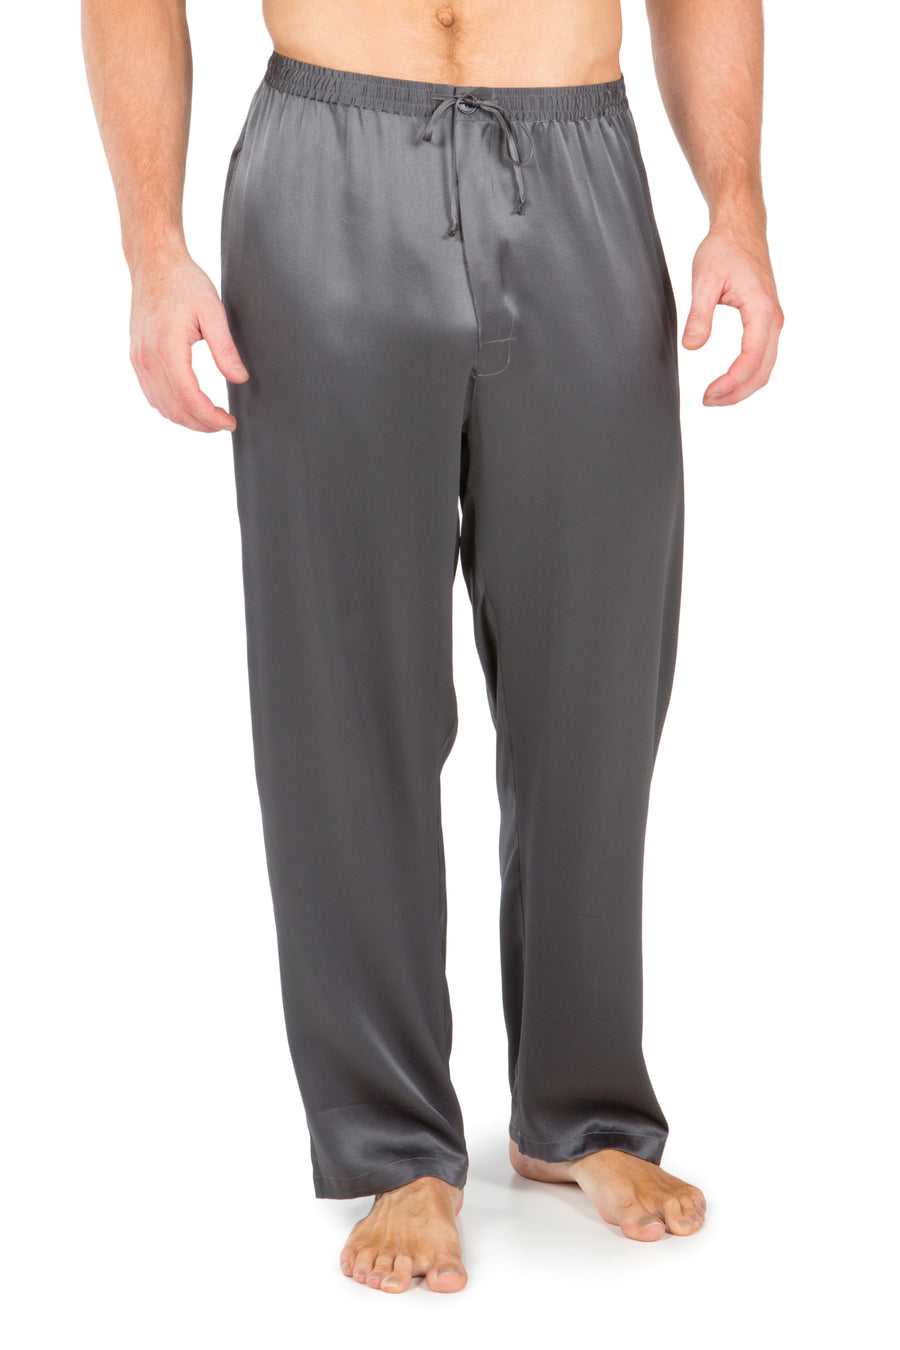 Hiruko - Men's Silk PJ Pants - TexereSilk